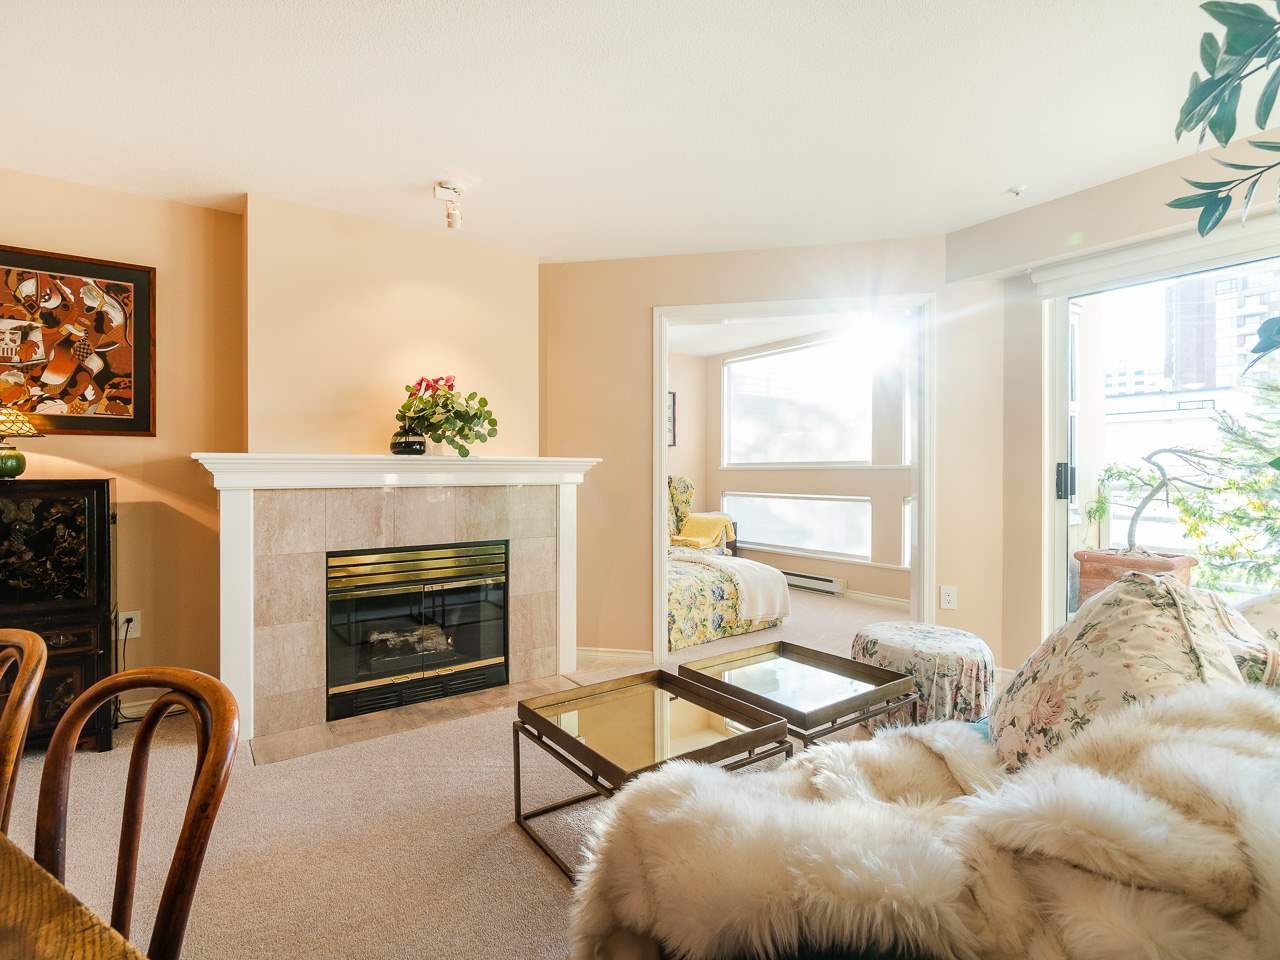 306 2105 W 42ND AVENUE - Kerrisdale Apartment/Condo for sale, 1 Bedroom (R2511504) - #5